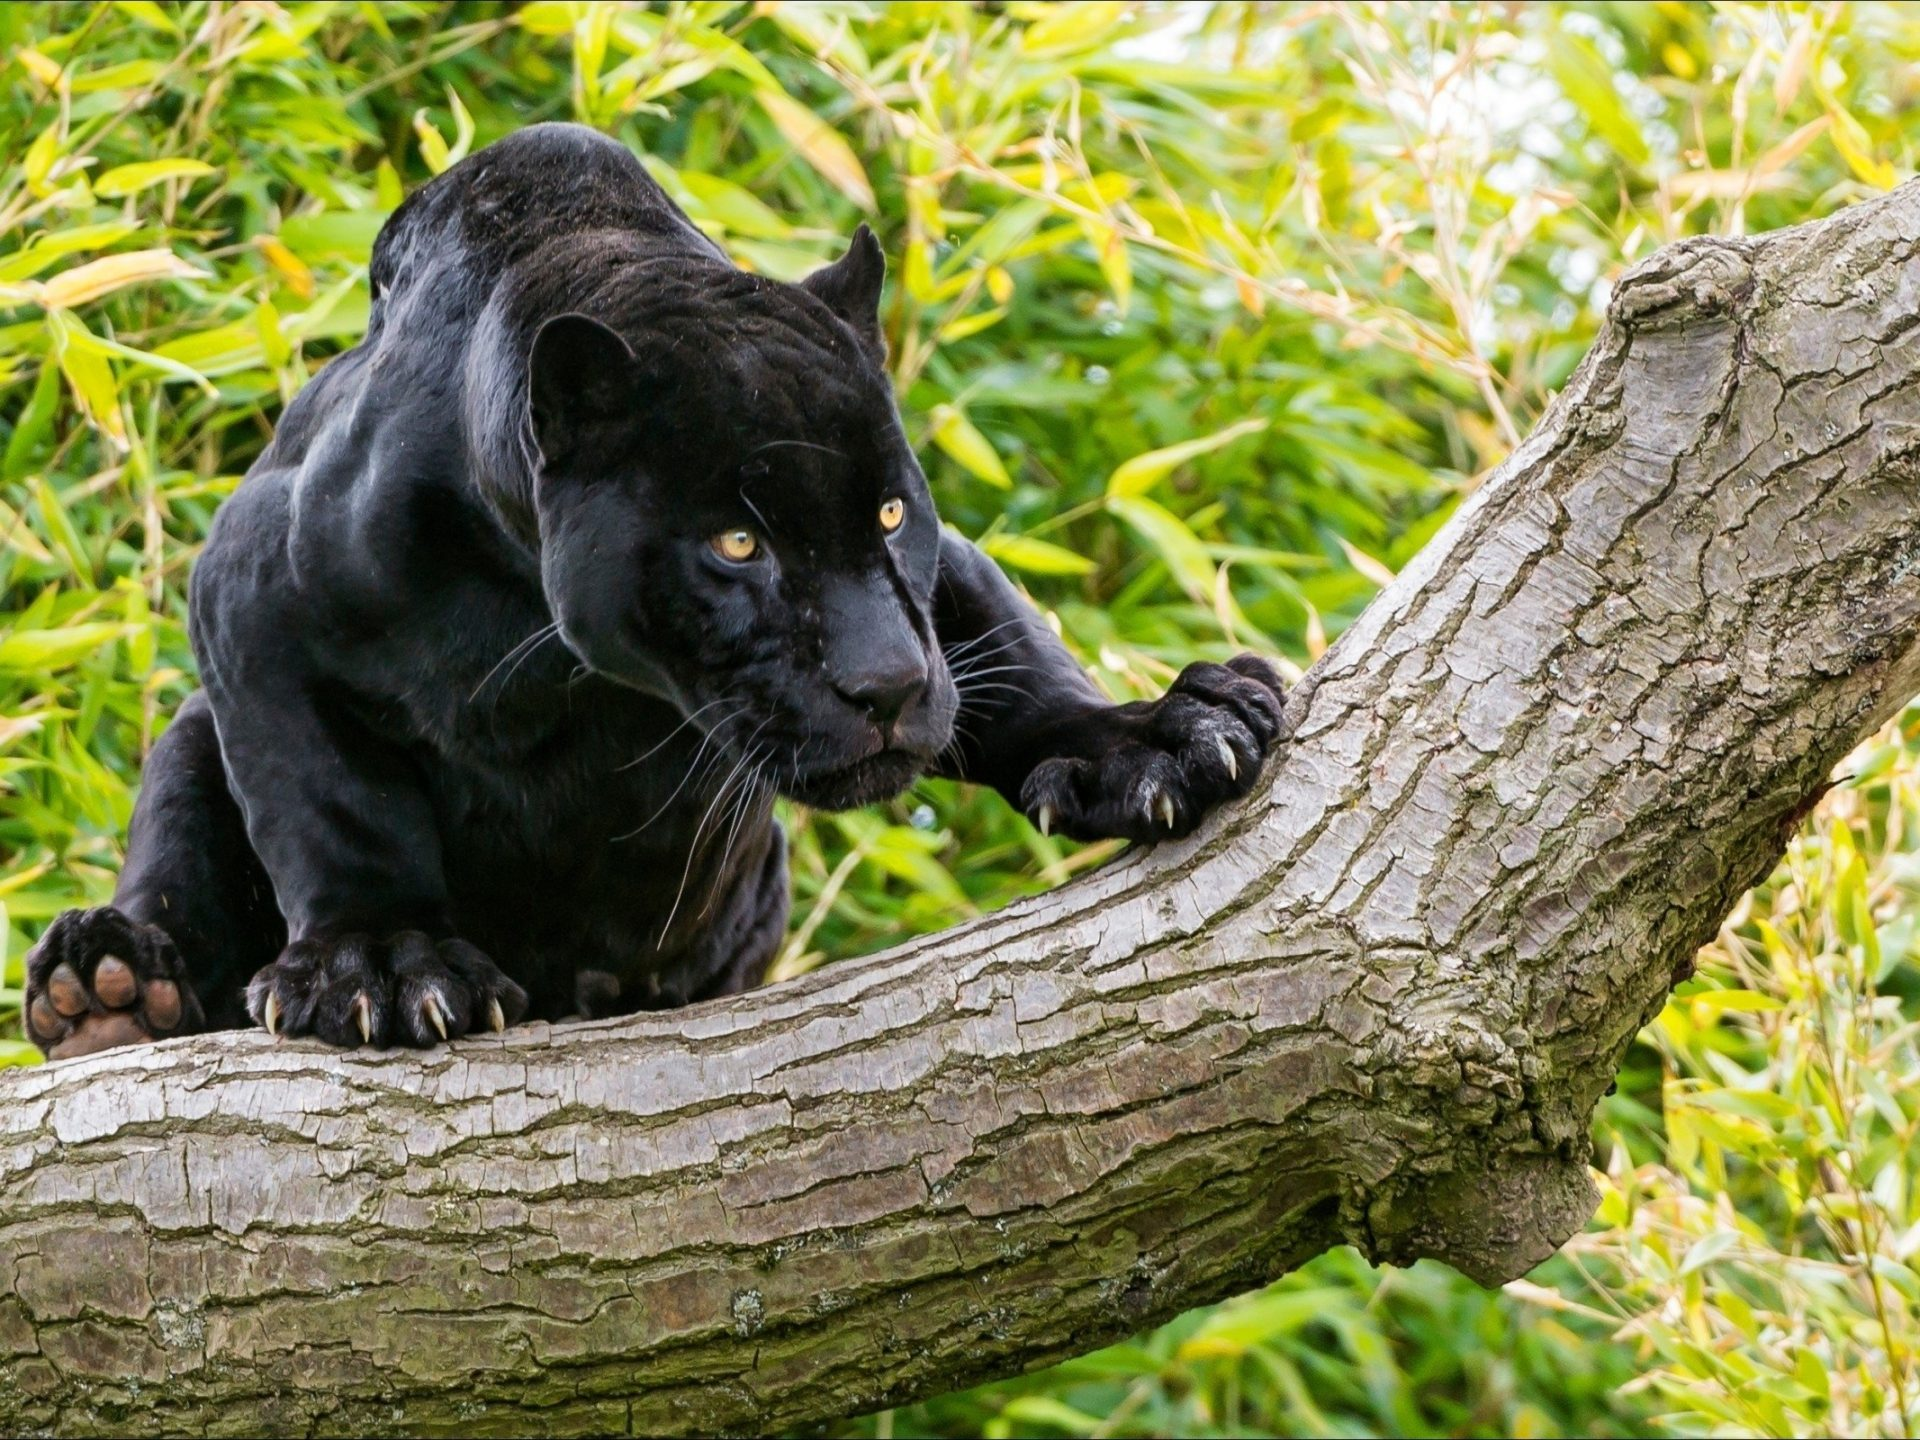 Cute Baby Sleeping Wallpapers Animals Black Panther On A Tree Desktop Wallpaper Hd